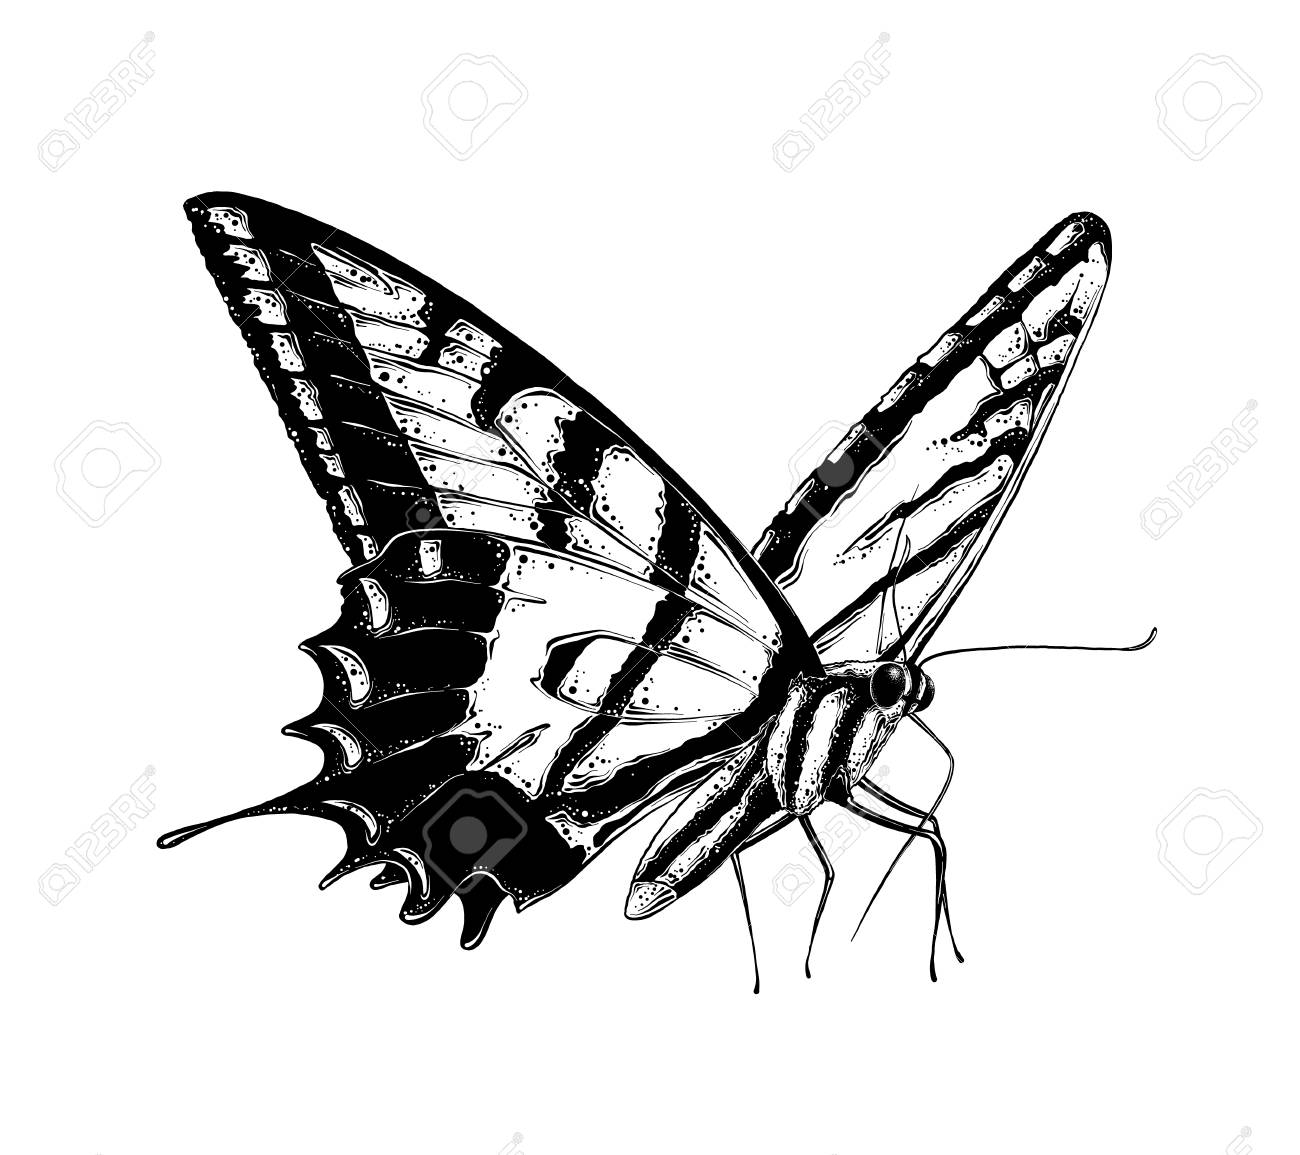 1461efd80 Drawing for posters, decoration and print. Vector illustration. Hand drawn  sketch of butterfly in black color, isolated on white background. Drawing  for